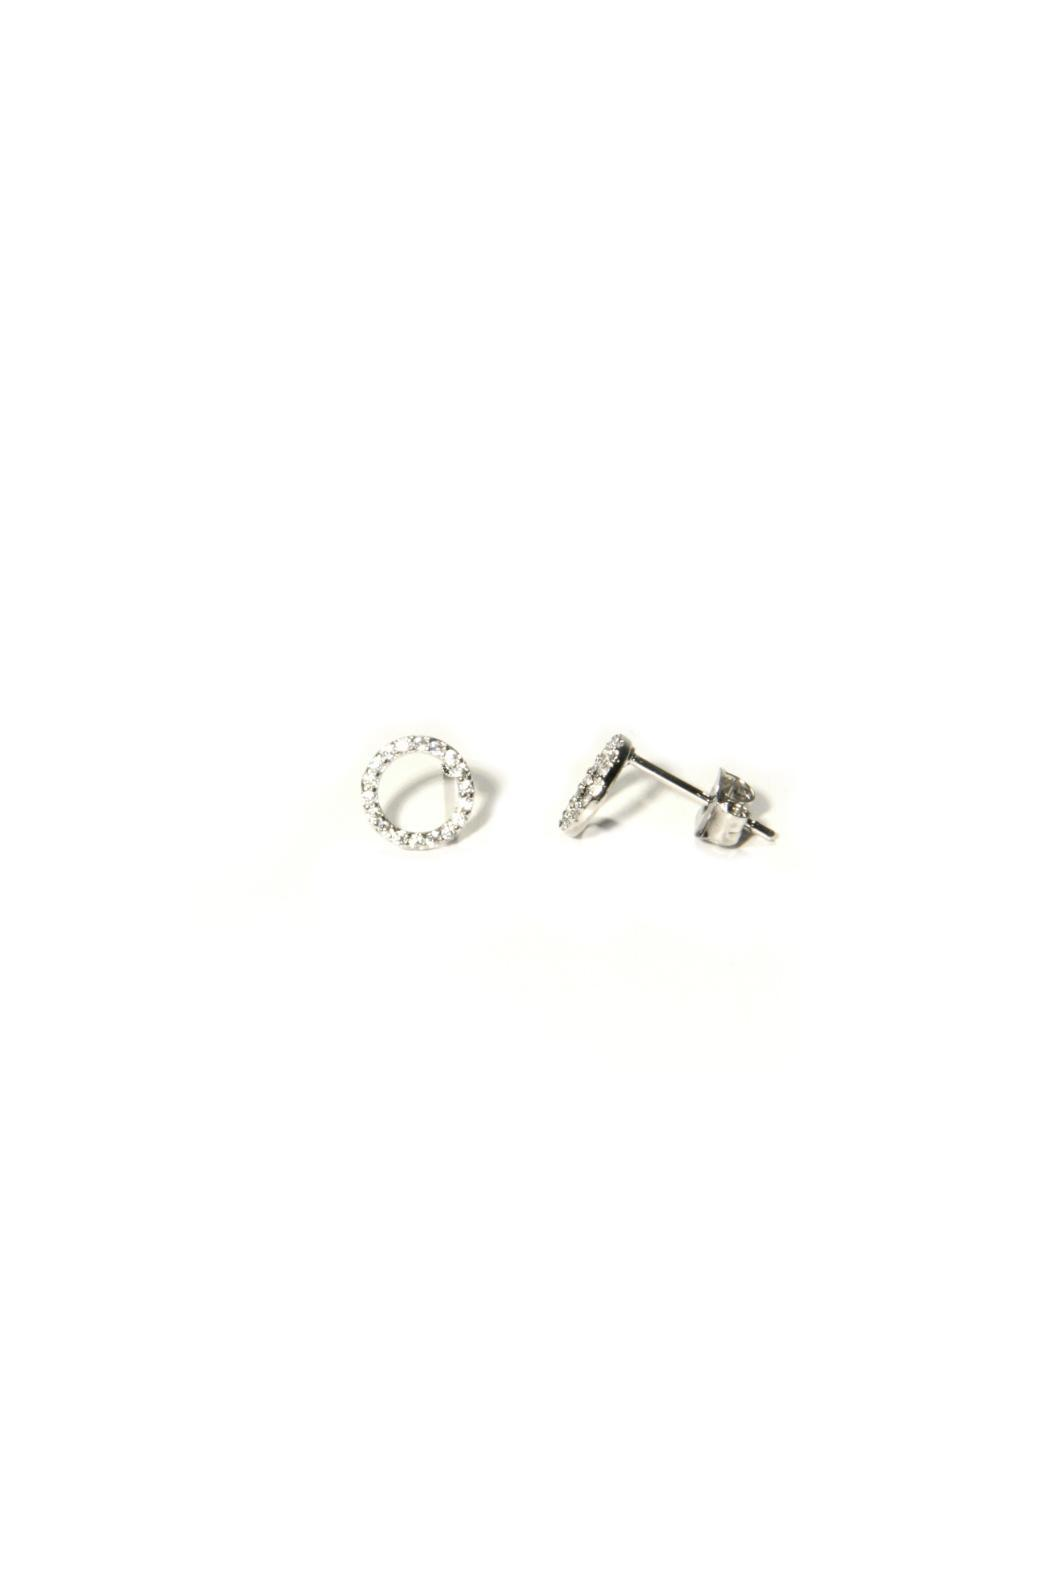 Light Years Collection Cz Ring Post Earrings - Main Image